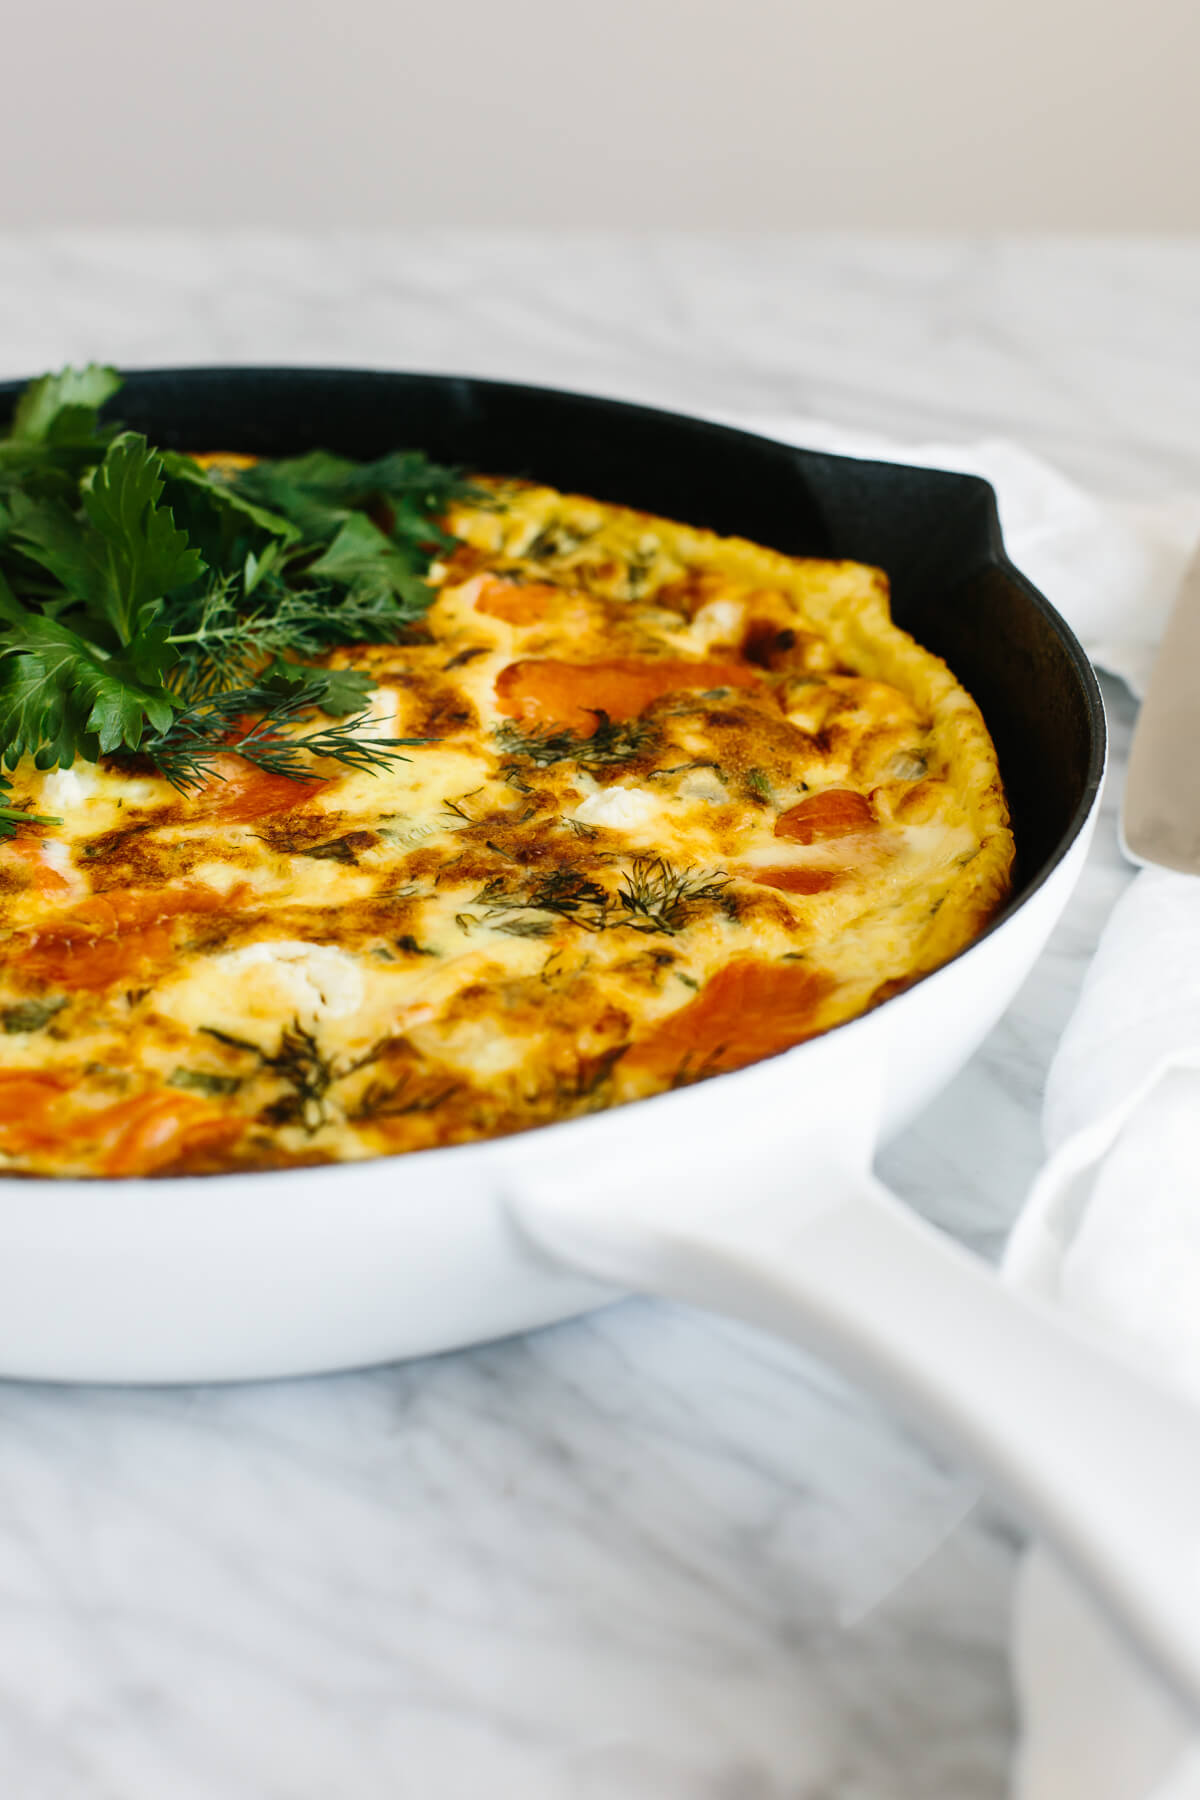 Smoked salmon frittata in a pan.